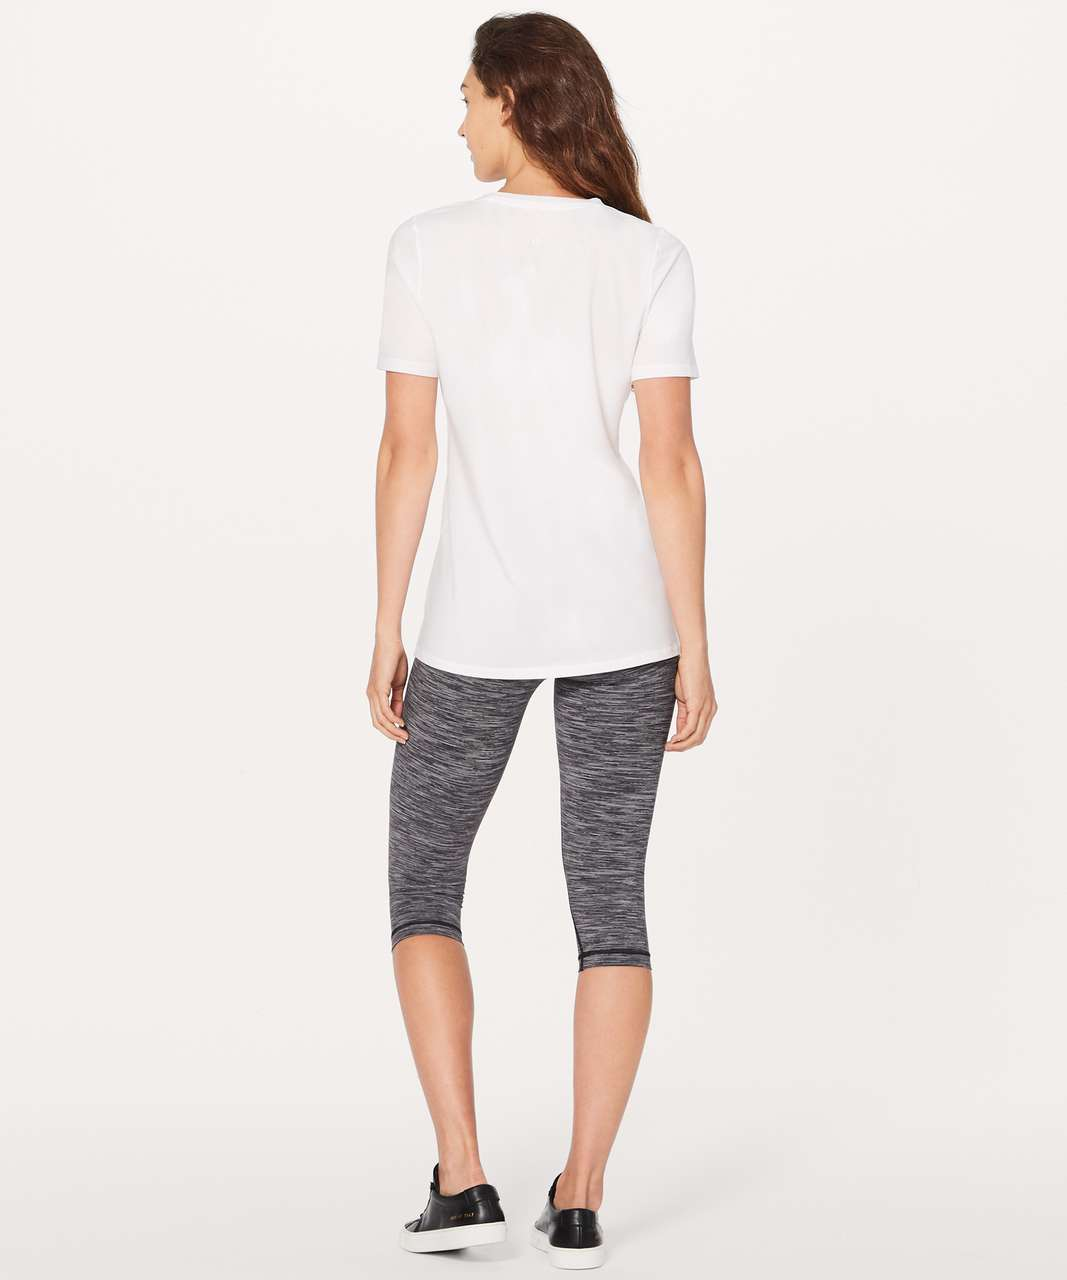 Lululemon Love Tee (Expression) - White